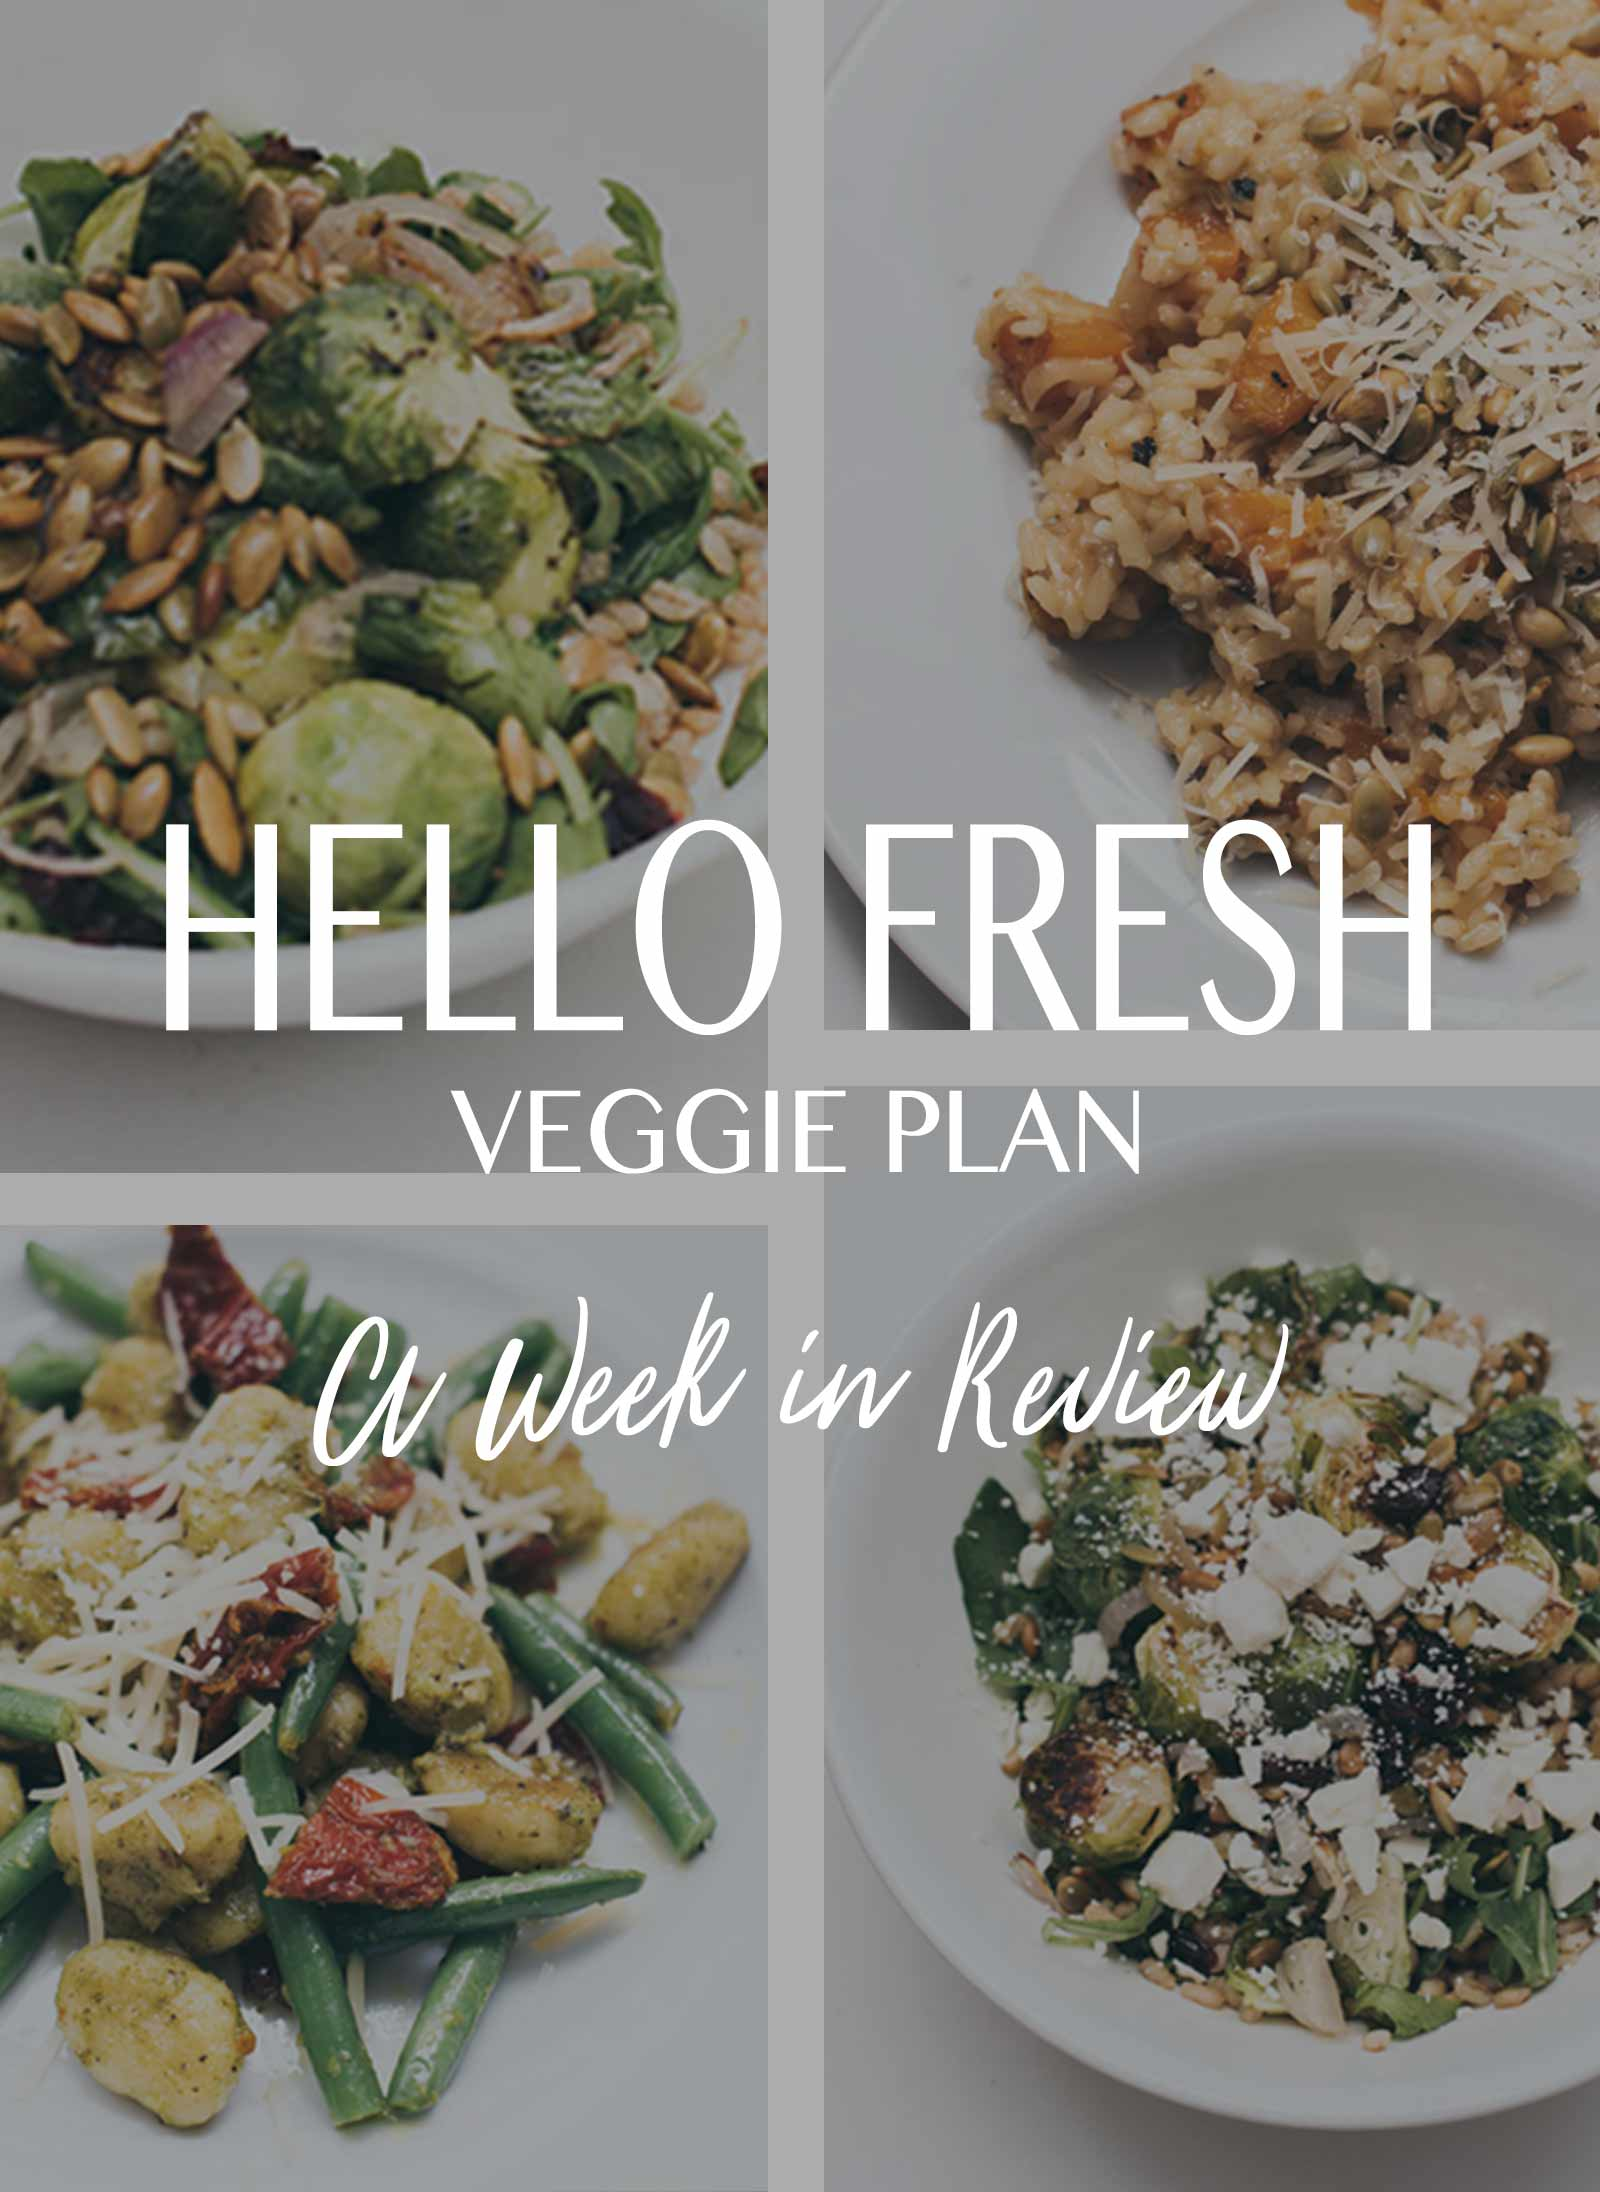 Buy Hellofresh Meal Kit Delivery Service  Price Colours